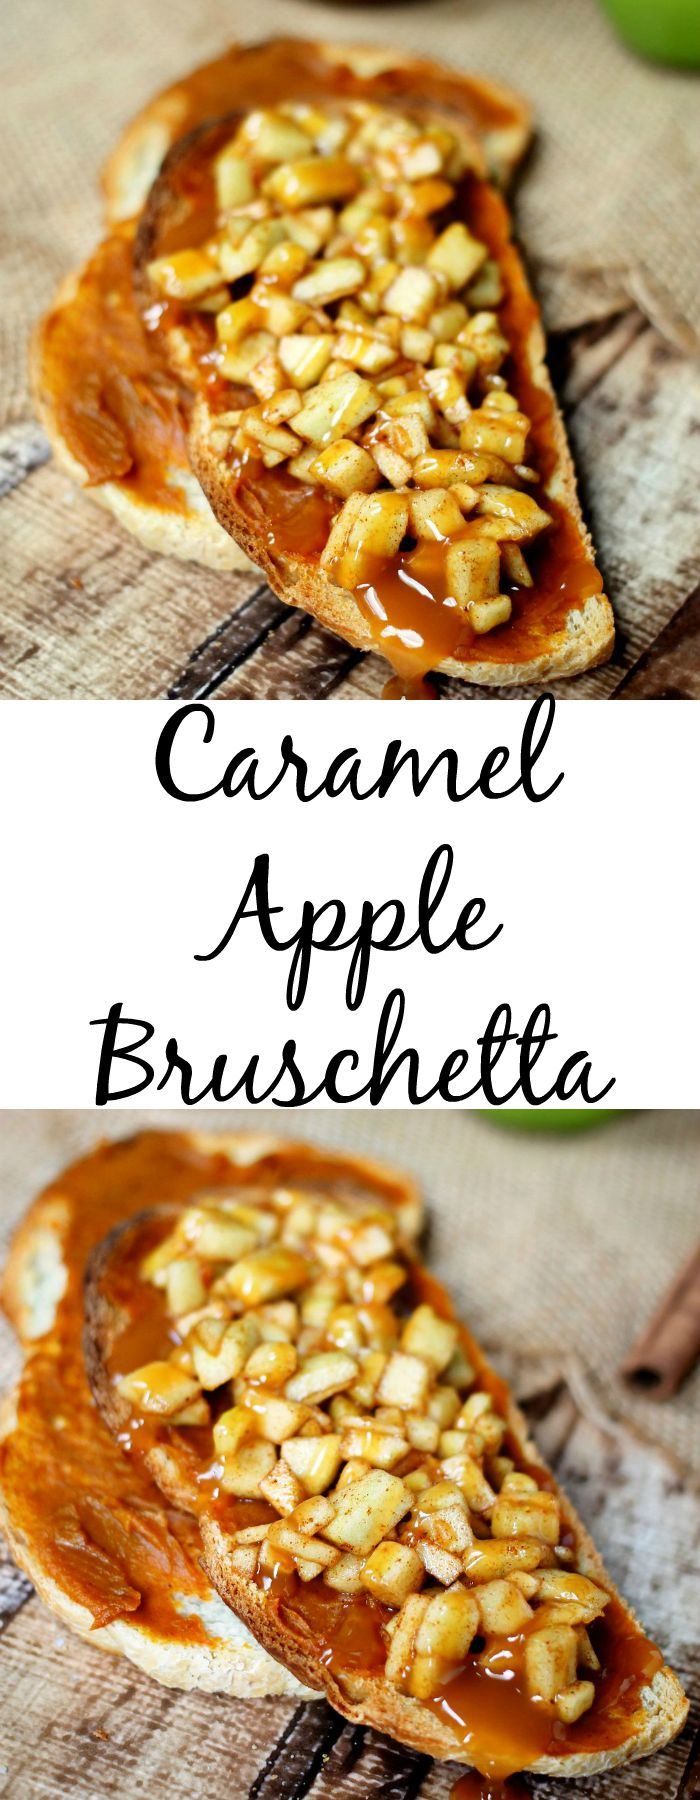 Caramel Apple Bruschetta